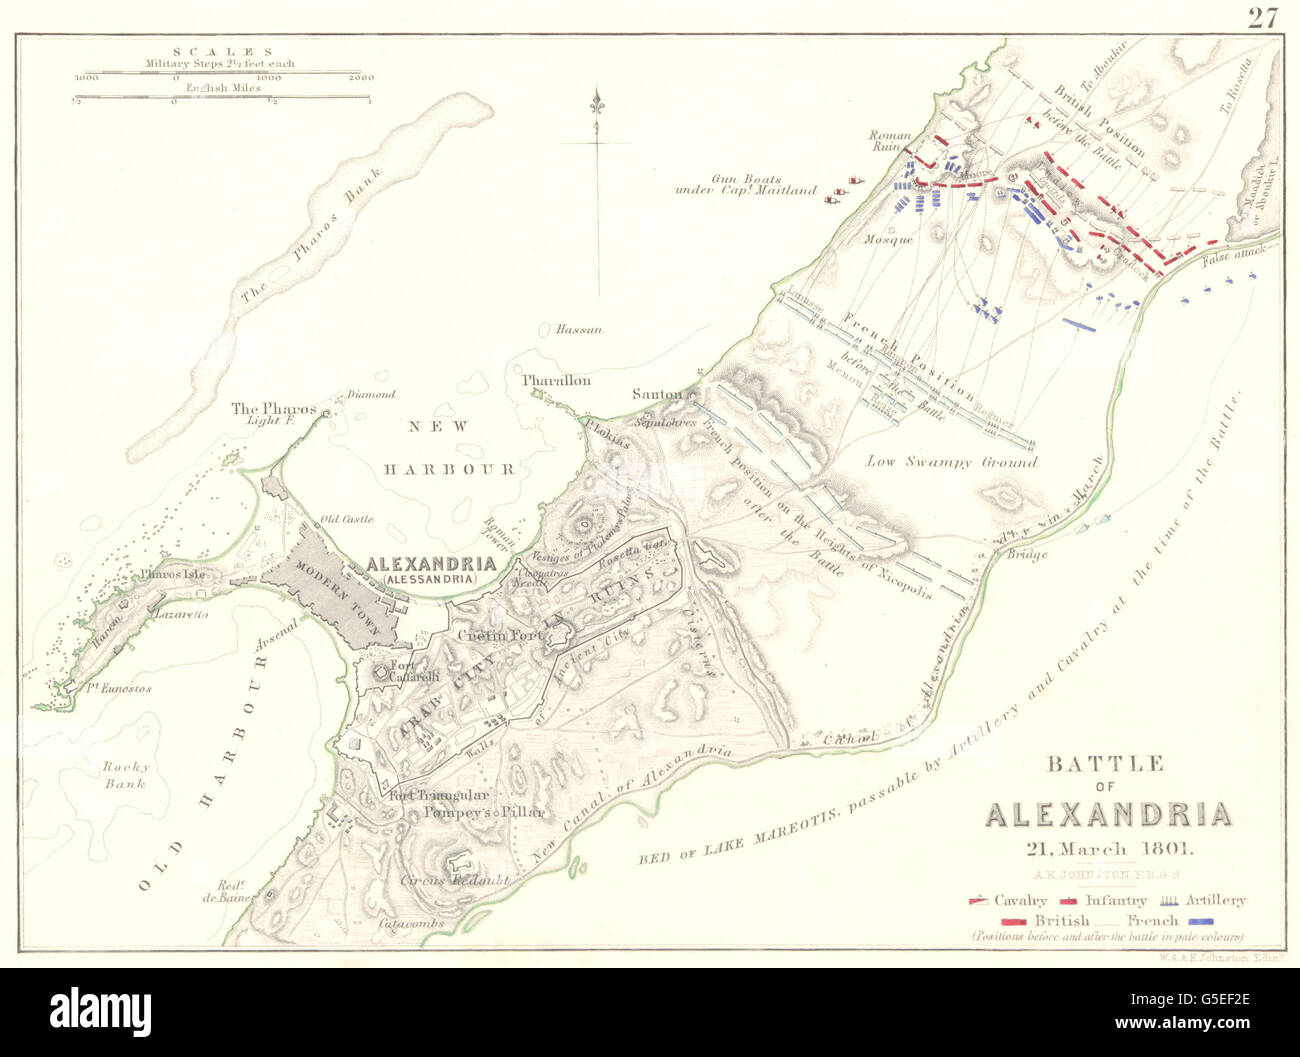 BATTLE OF ALEXANDRIA: 21st March 1801. Egypt. Napoleonic Wars, 1848 old map - Stock Image